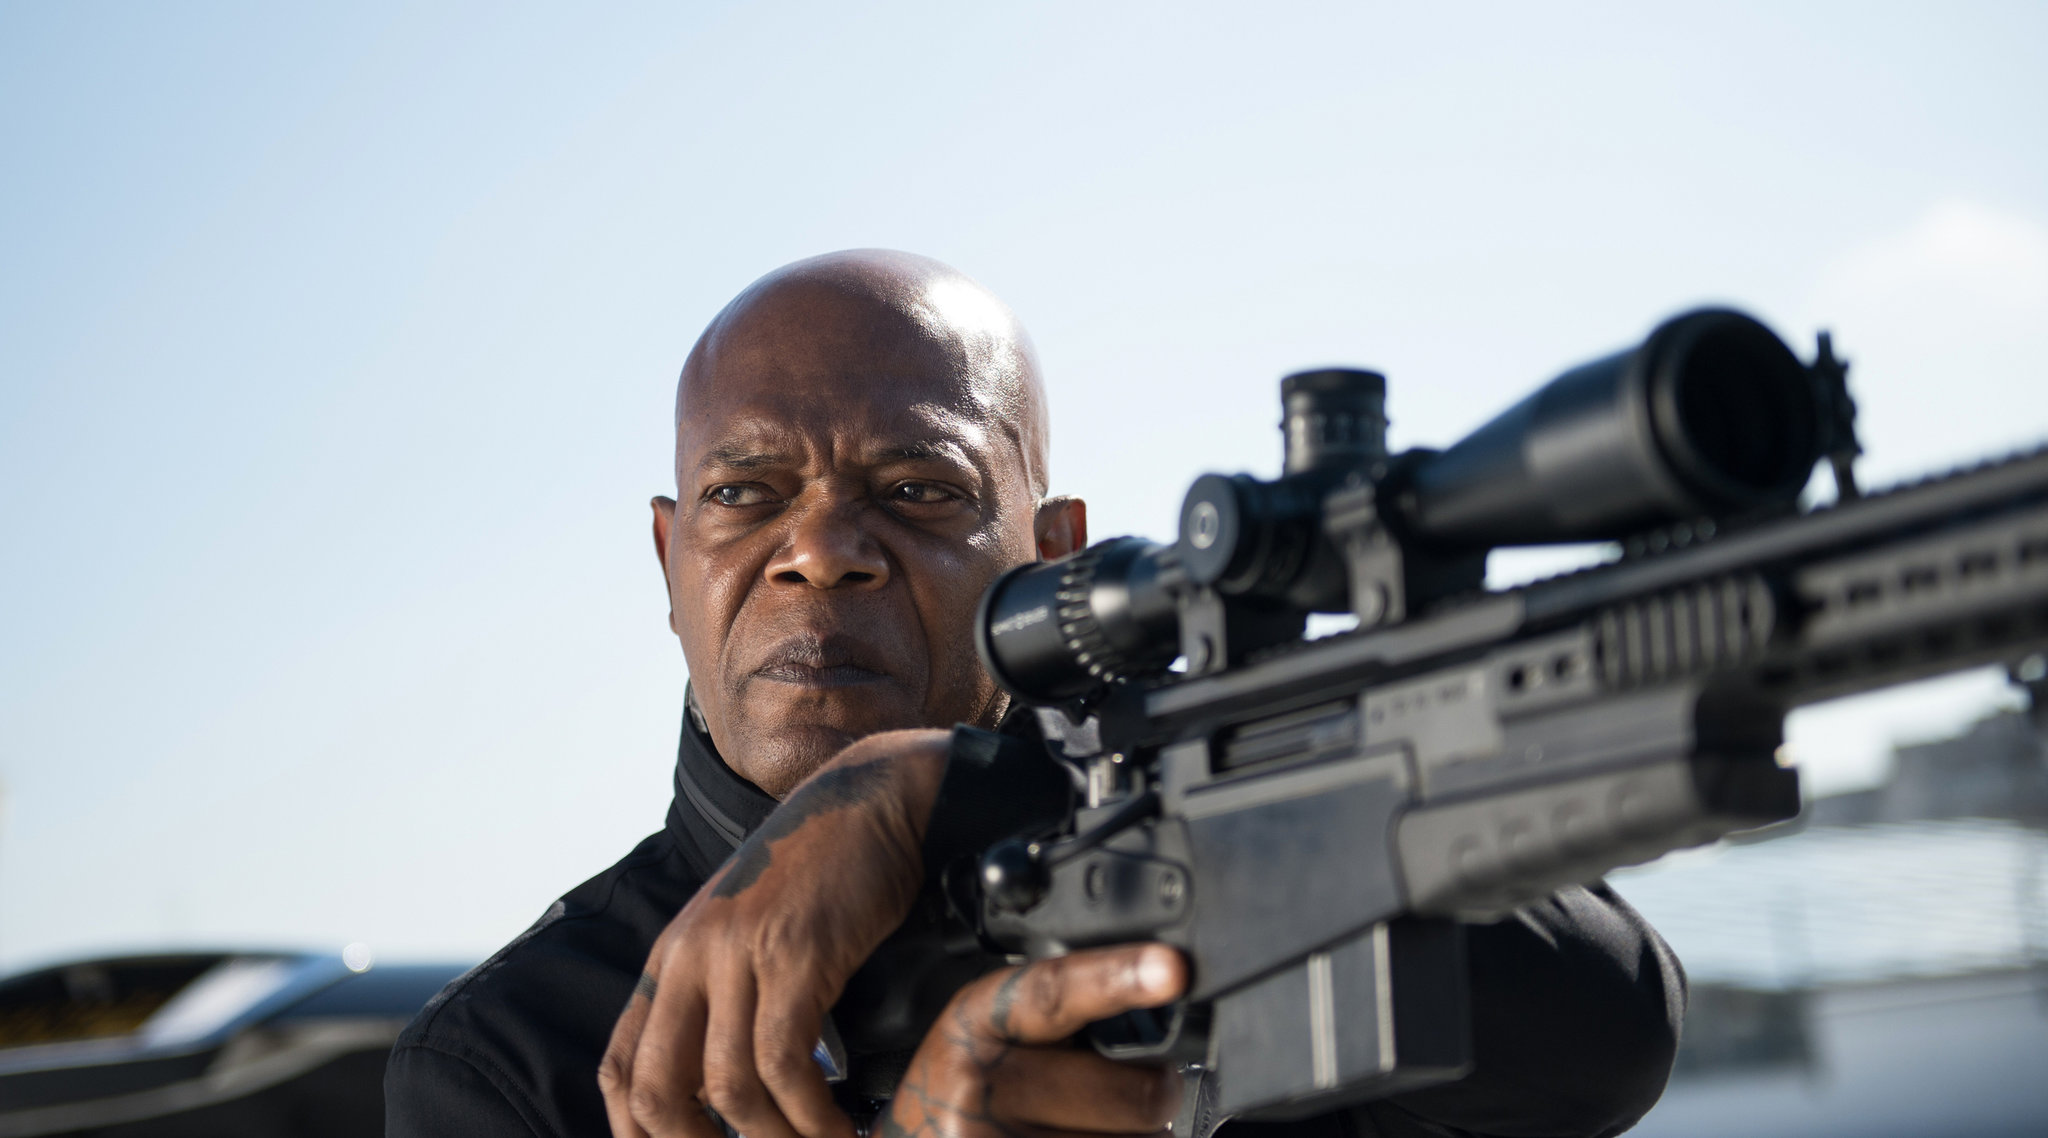 Samuel Jackson in The Hitman's Bodyguard